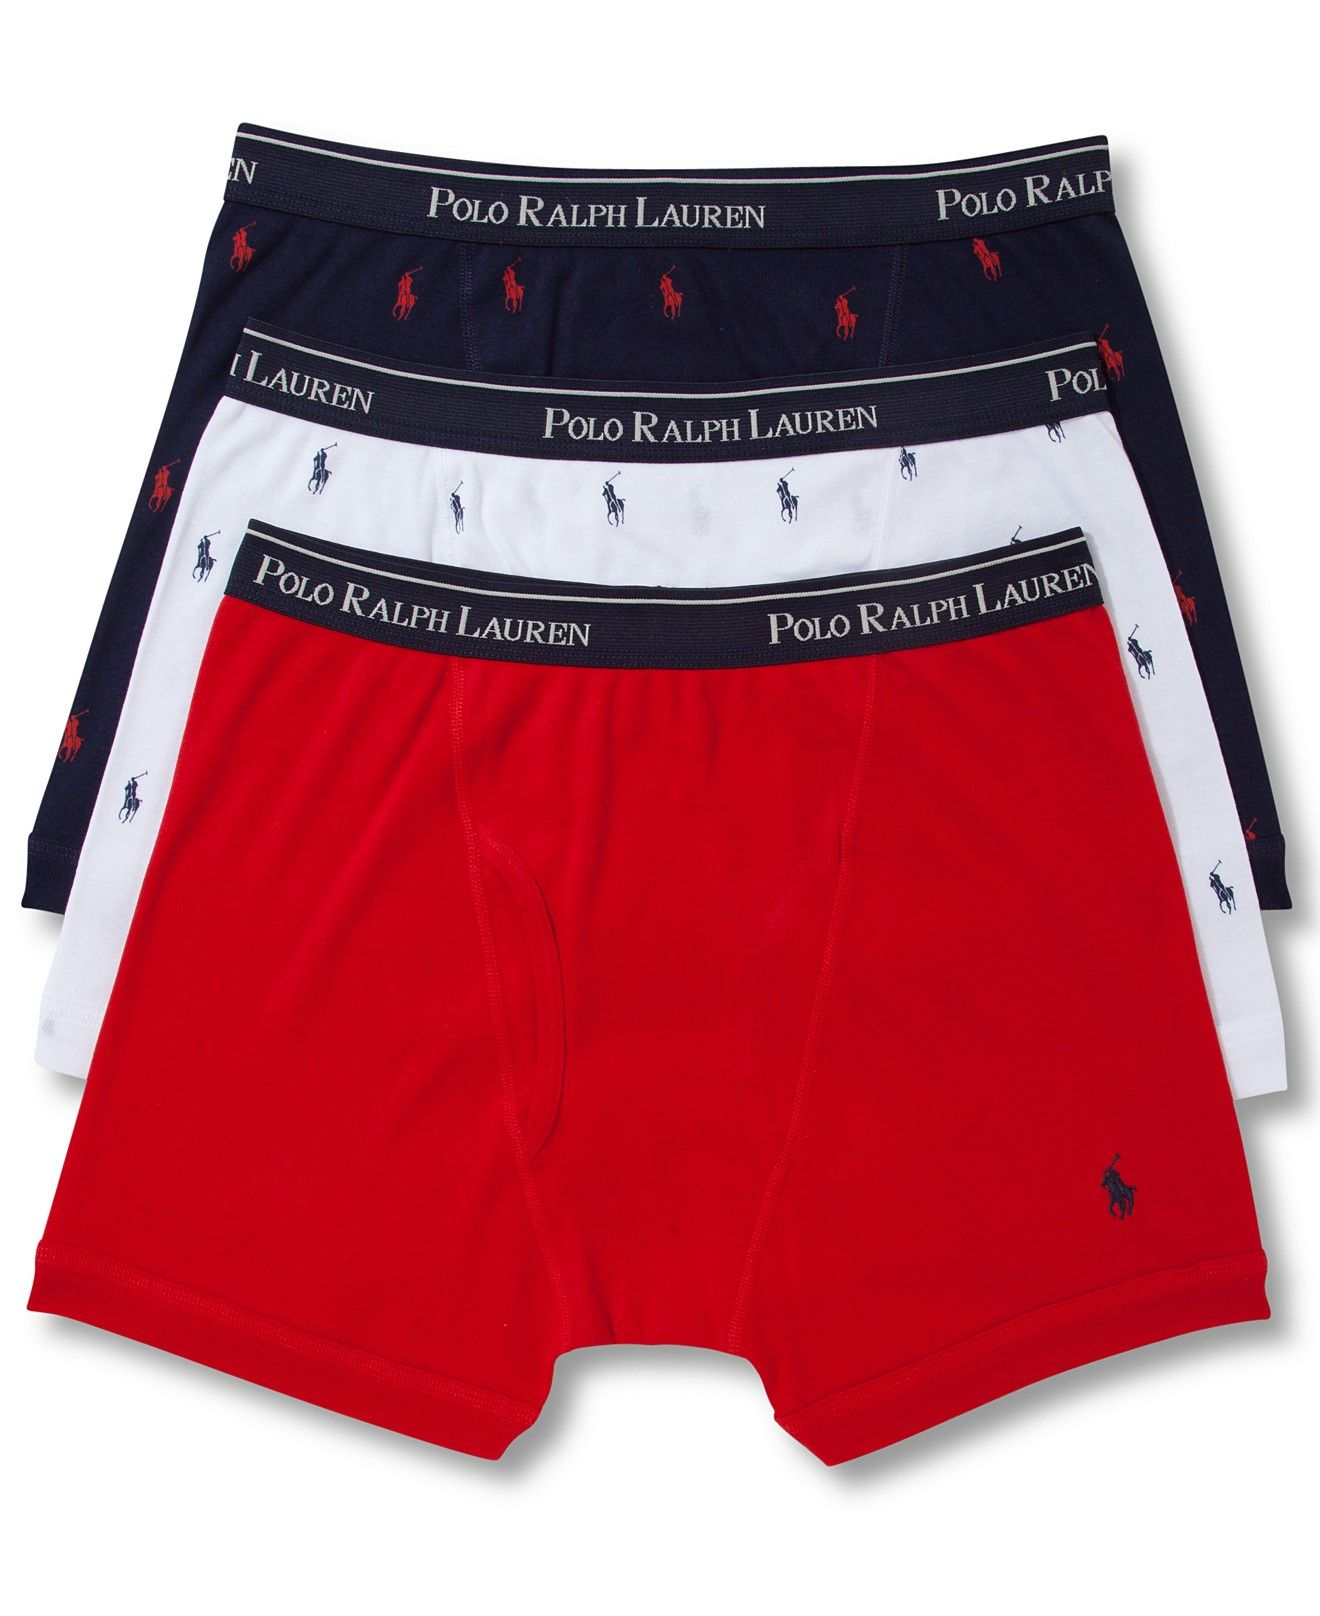 abf7ed0c074076 Polo Ralph Lauren Men's Underwear, Boxer Briefs 3 Pack - Underwear - Men -  Macy's